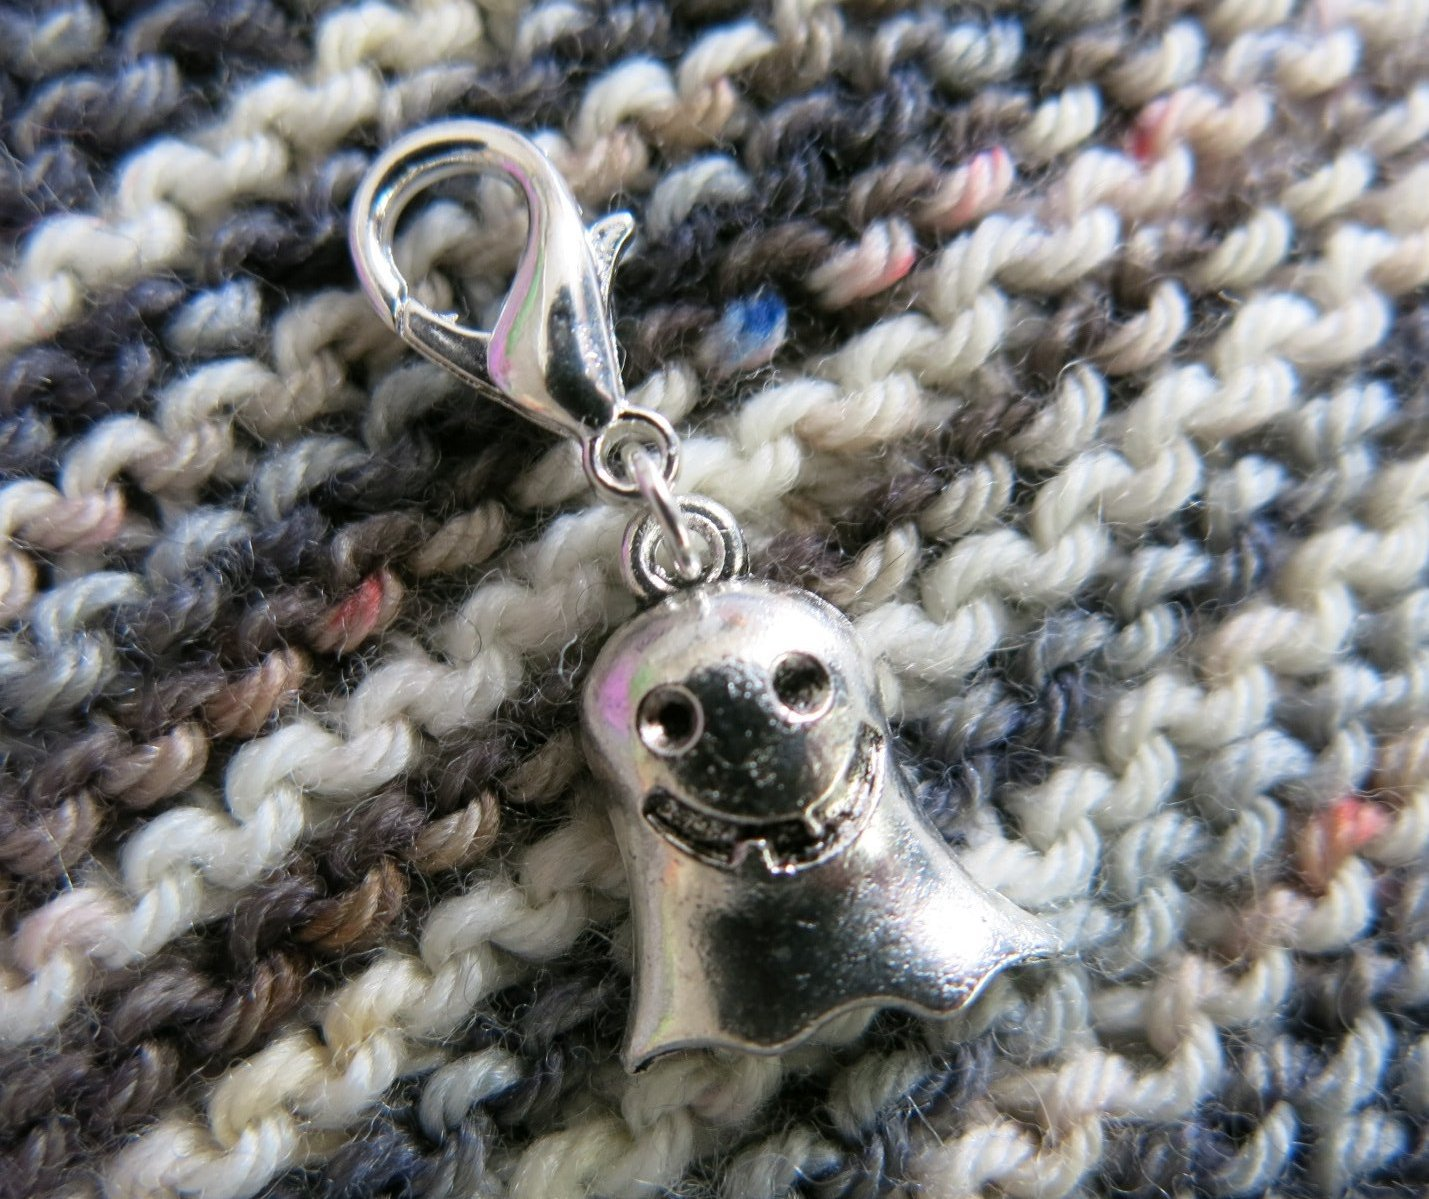 silver ghost charm for bracelets, bags and knitting projects